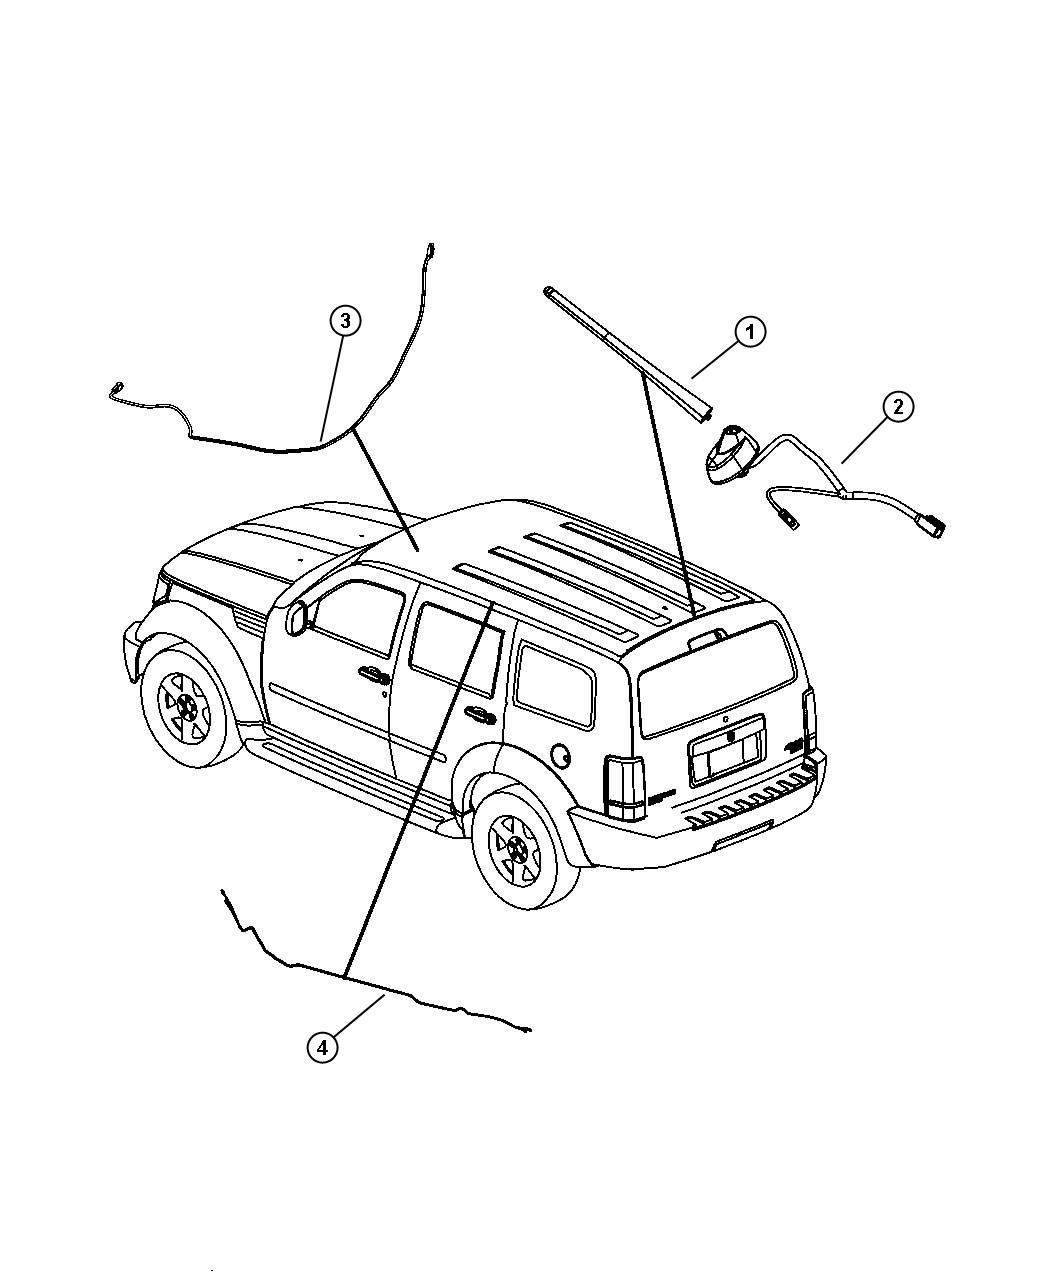 2012 Jeep Liberty Mast, panel. Antenna, roof. Without